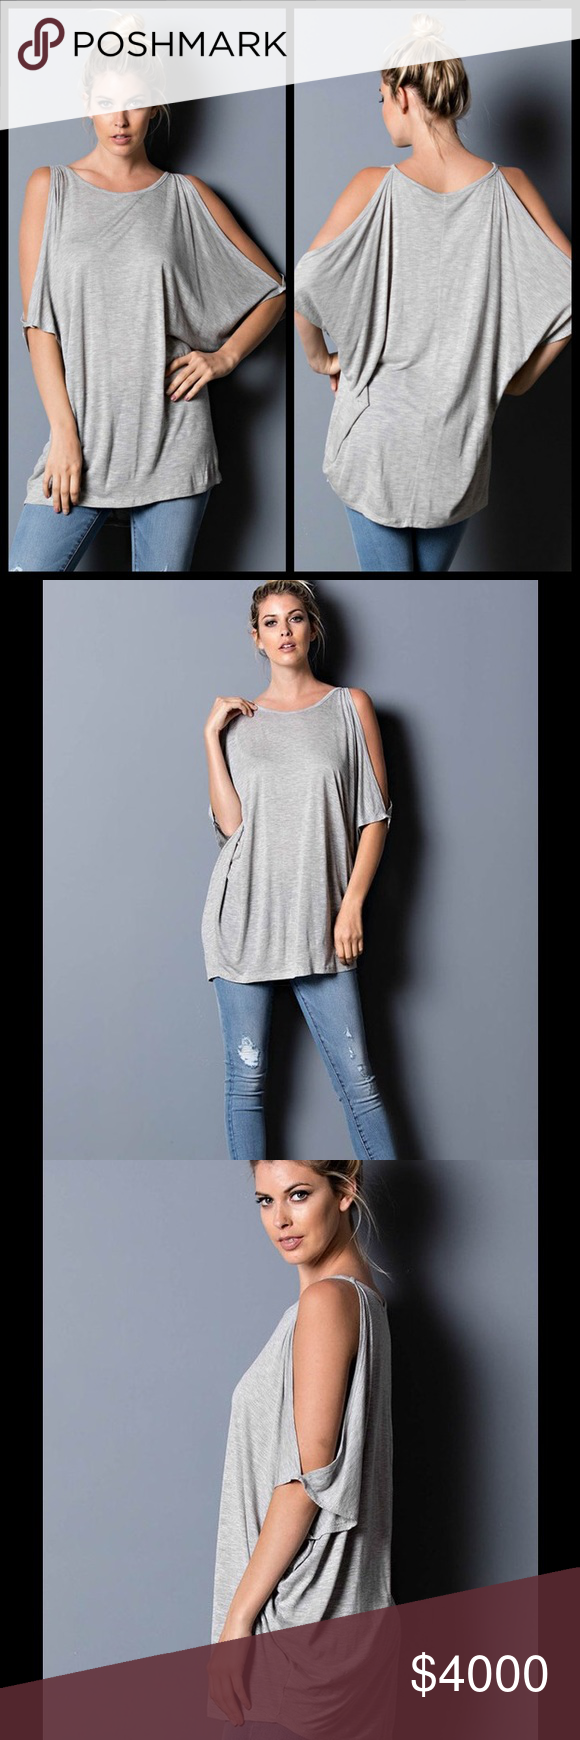 SALE!! GRAY CUT OUT SHOULDER TOP Heather Gray Cut Out Shoulder Top. Very trendy & lightweight material that is soft & comfy. Super cute with boyfriend jeans. Sizes S, M, L. Rayon. Price is final. Tops